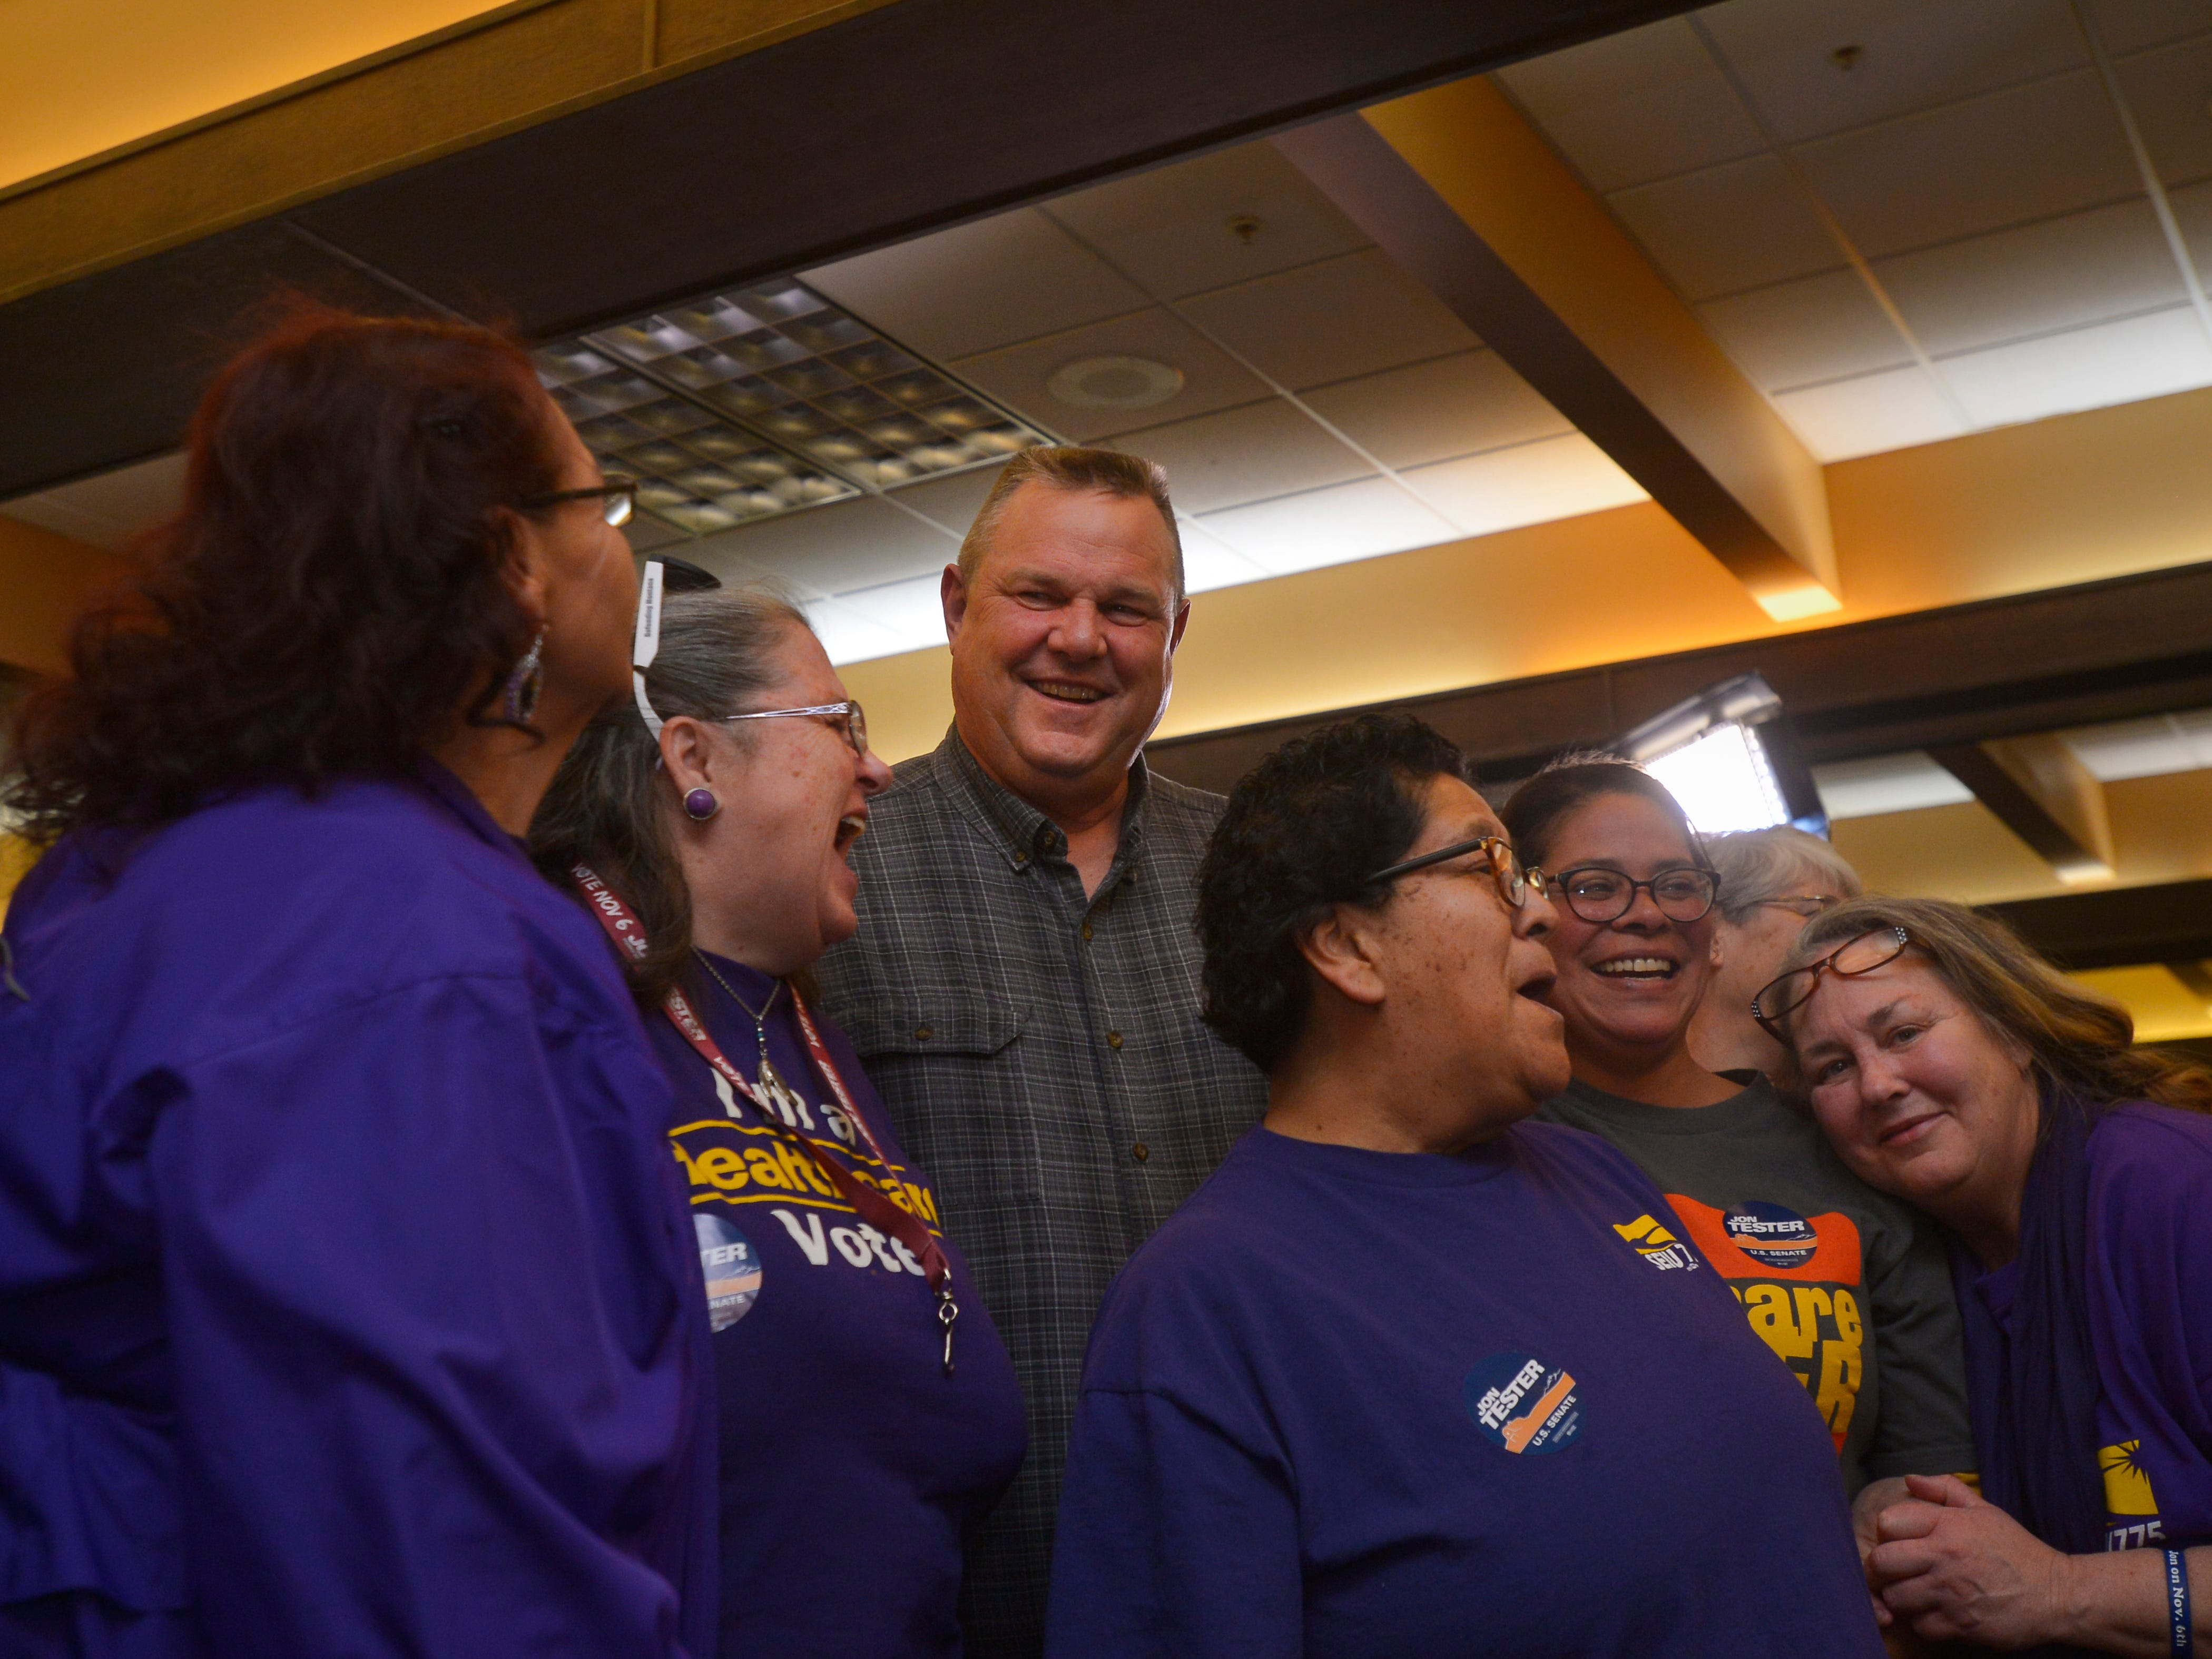 Senator Jon Tester poses for a photo with members of the Service Employees International Union, which represents care givers around the state, Tuesday night during his election night party at the Holiday Inn in Great Falls.